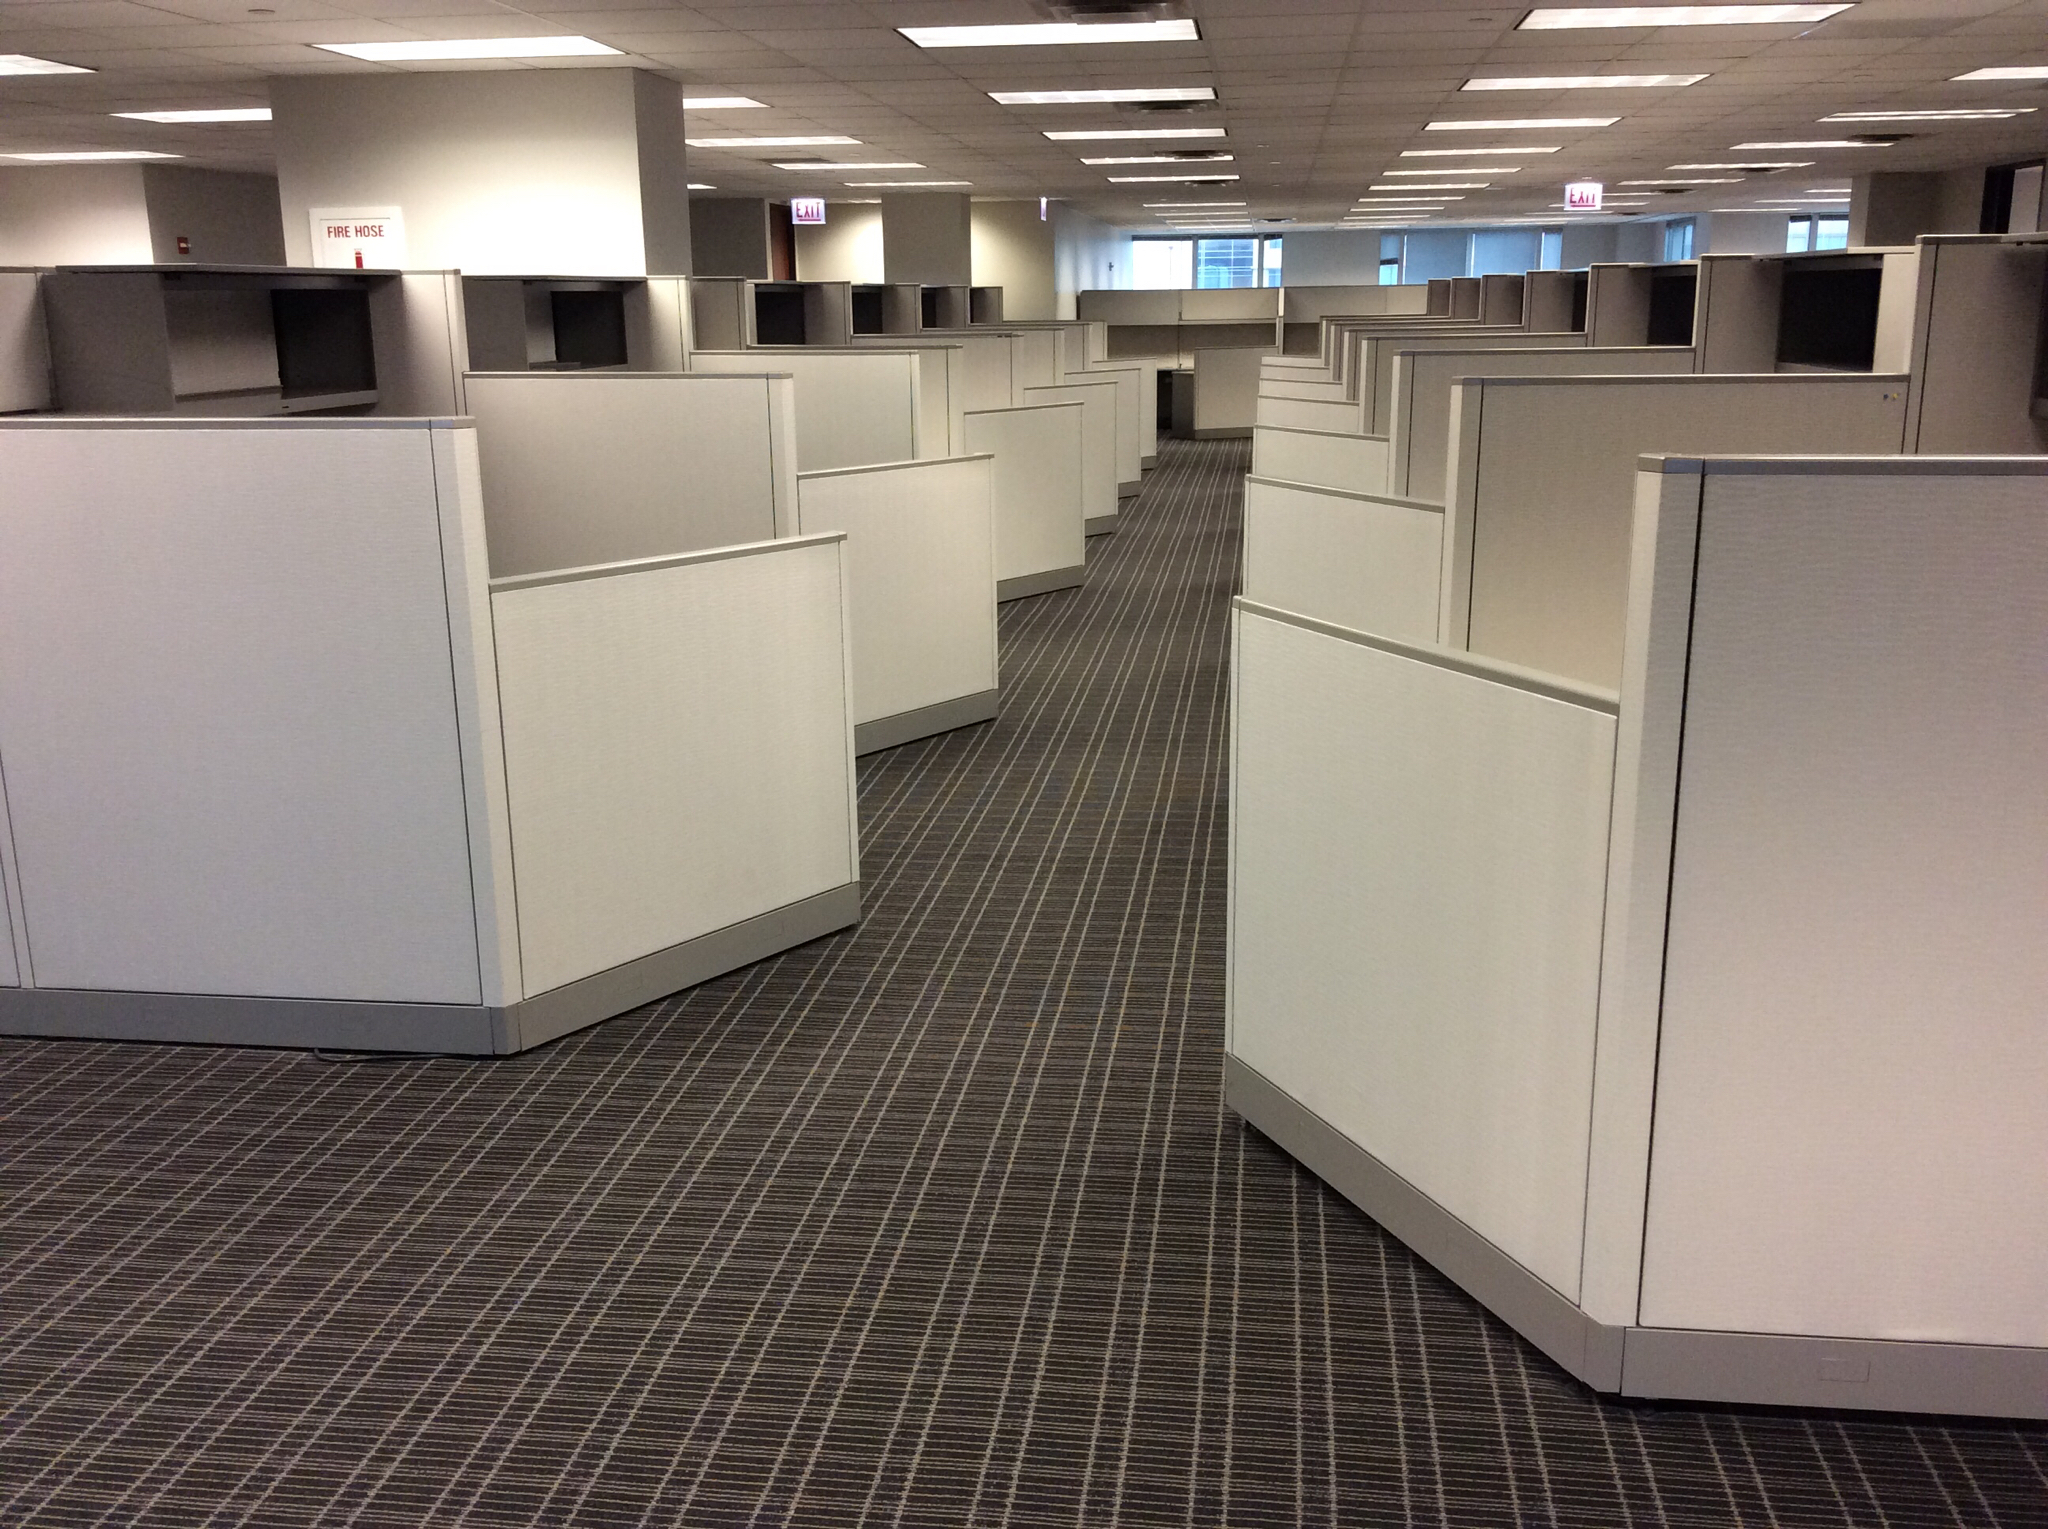 91 Used Office Furniture Stores In Chicago New Used